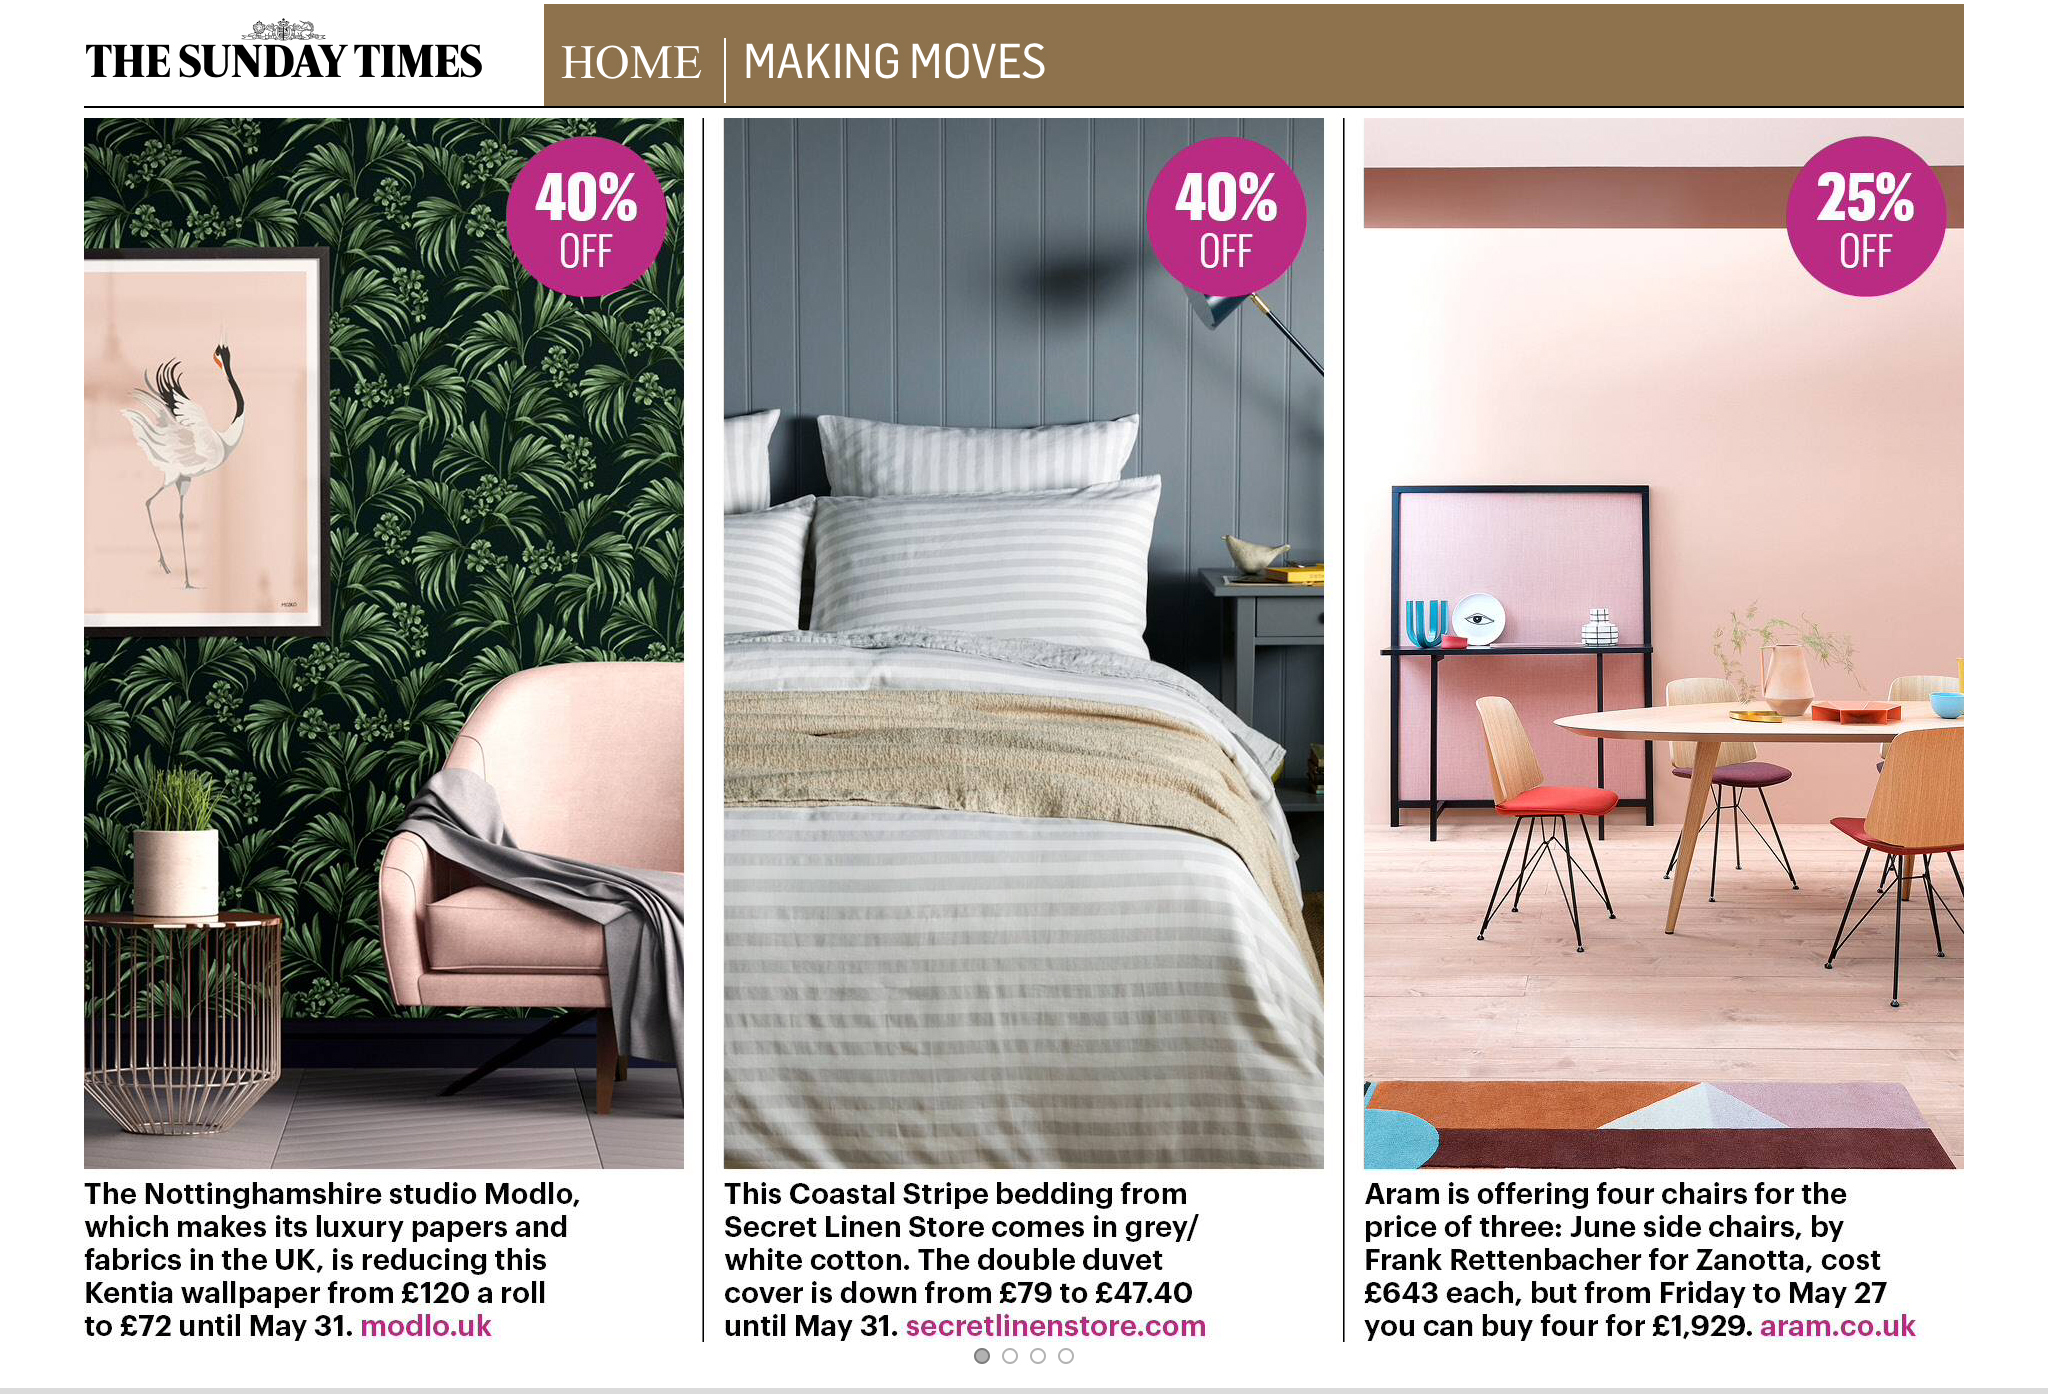 The Sunday Times Home 19th May 2019 Modlo and Secret Linen Store.jpg